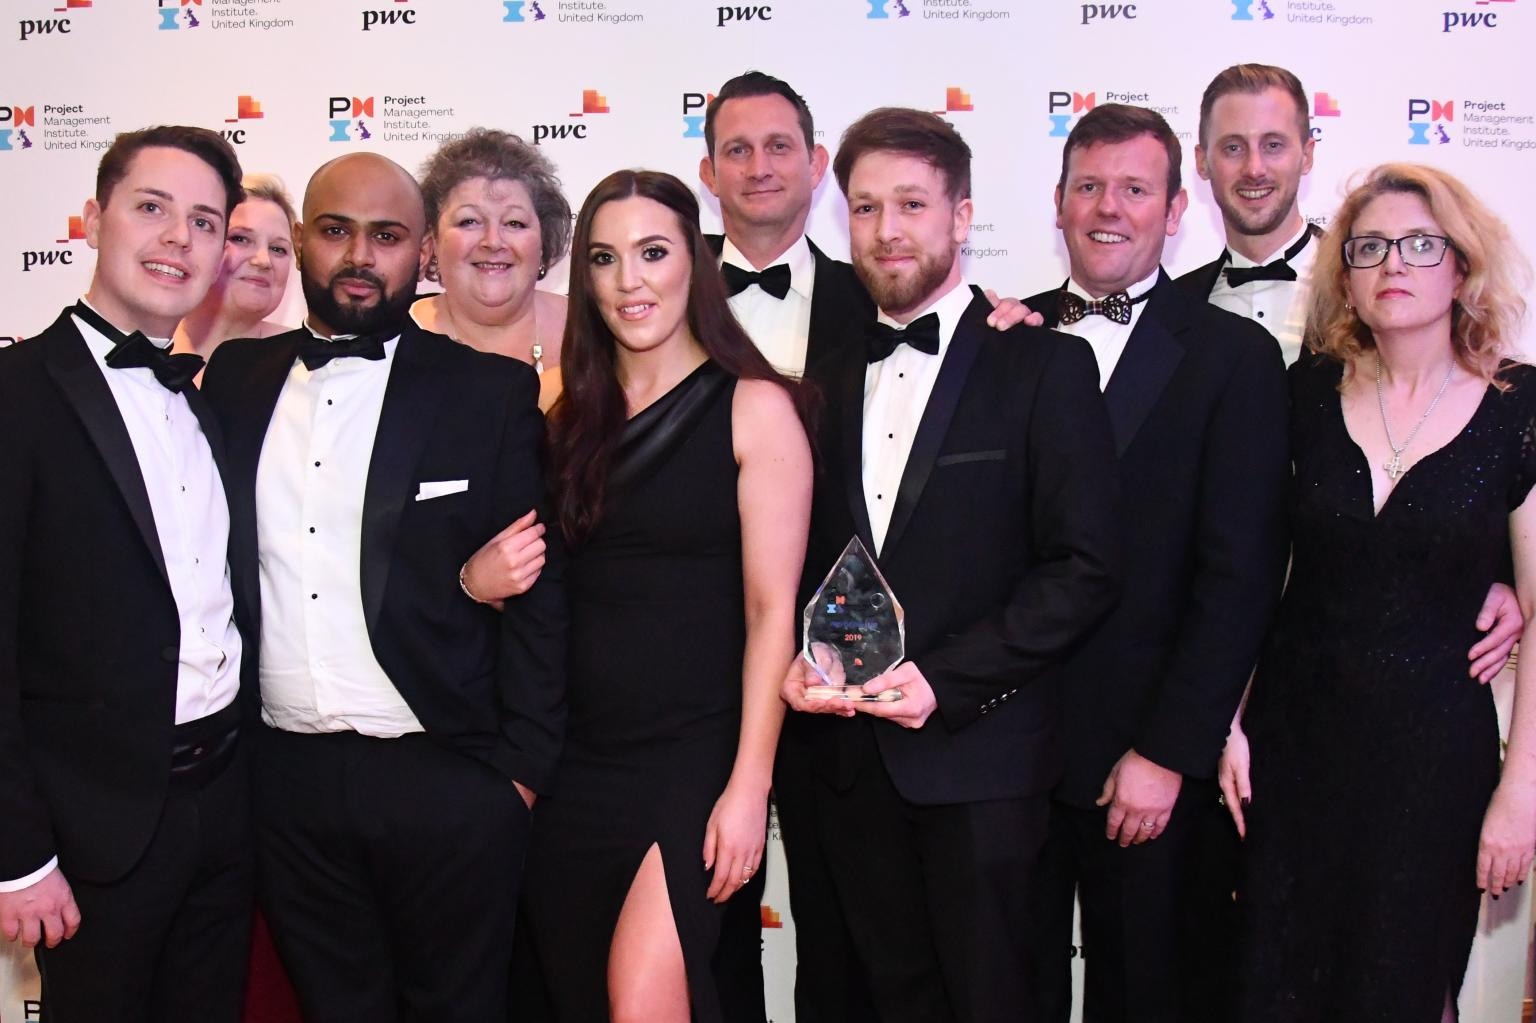 Dyson - PMI National Awards 2019 - PMO of the Year | Wellingtone